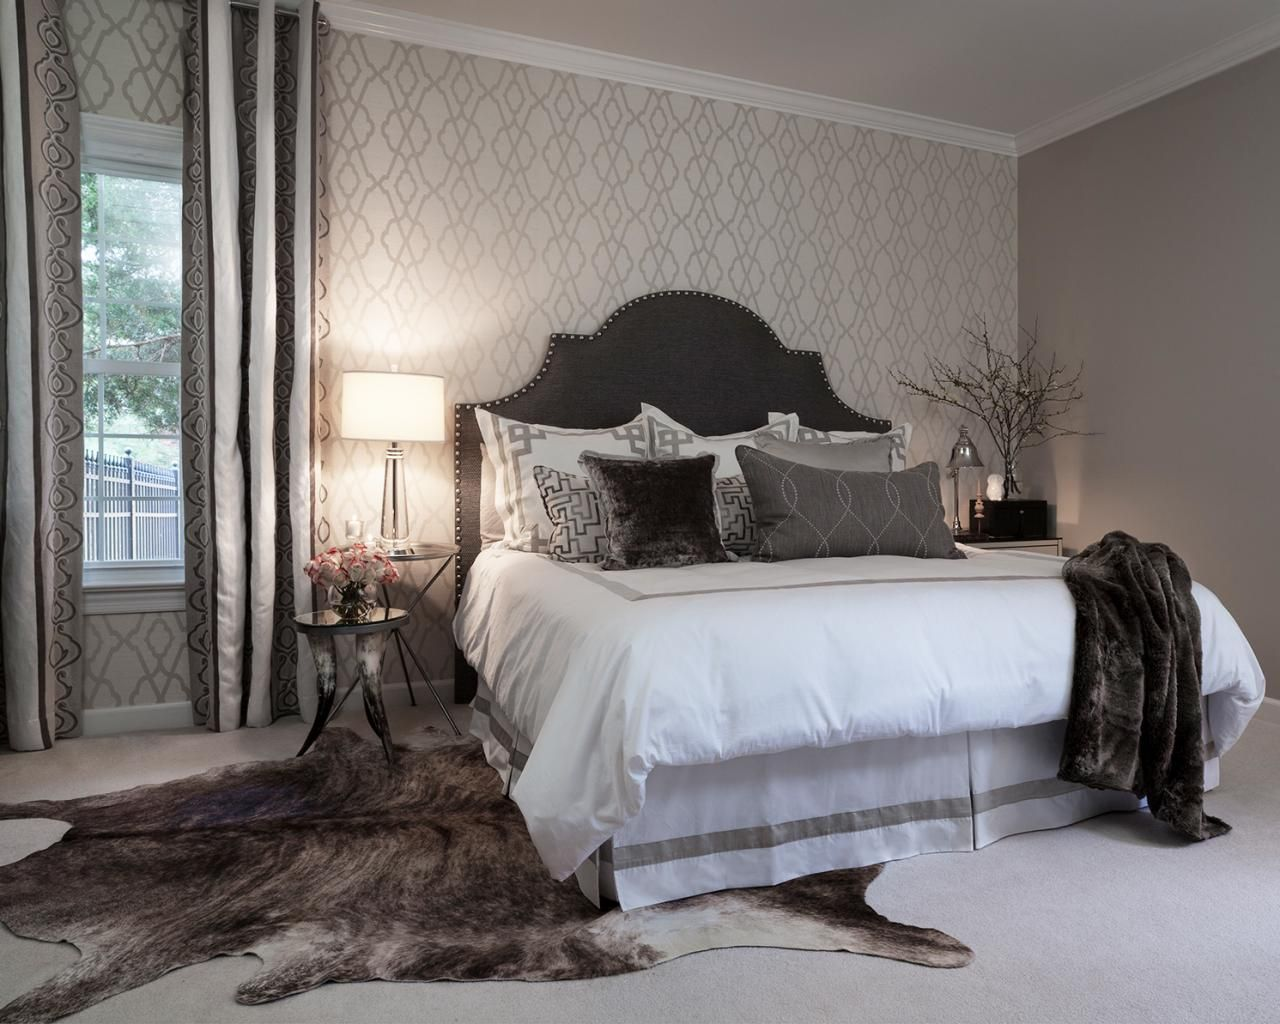 Bon An Accent Wall With Neutral Patterned Wallpaper Adds A Subtle Graphic Touch  To This Monochromatic Master